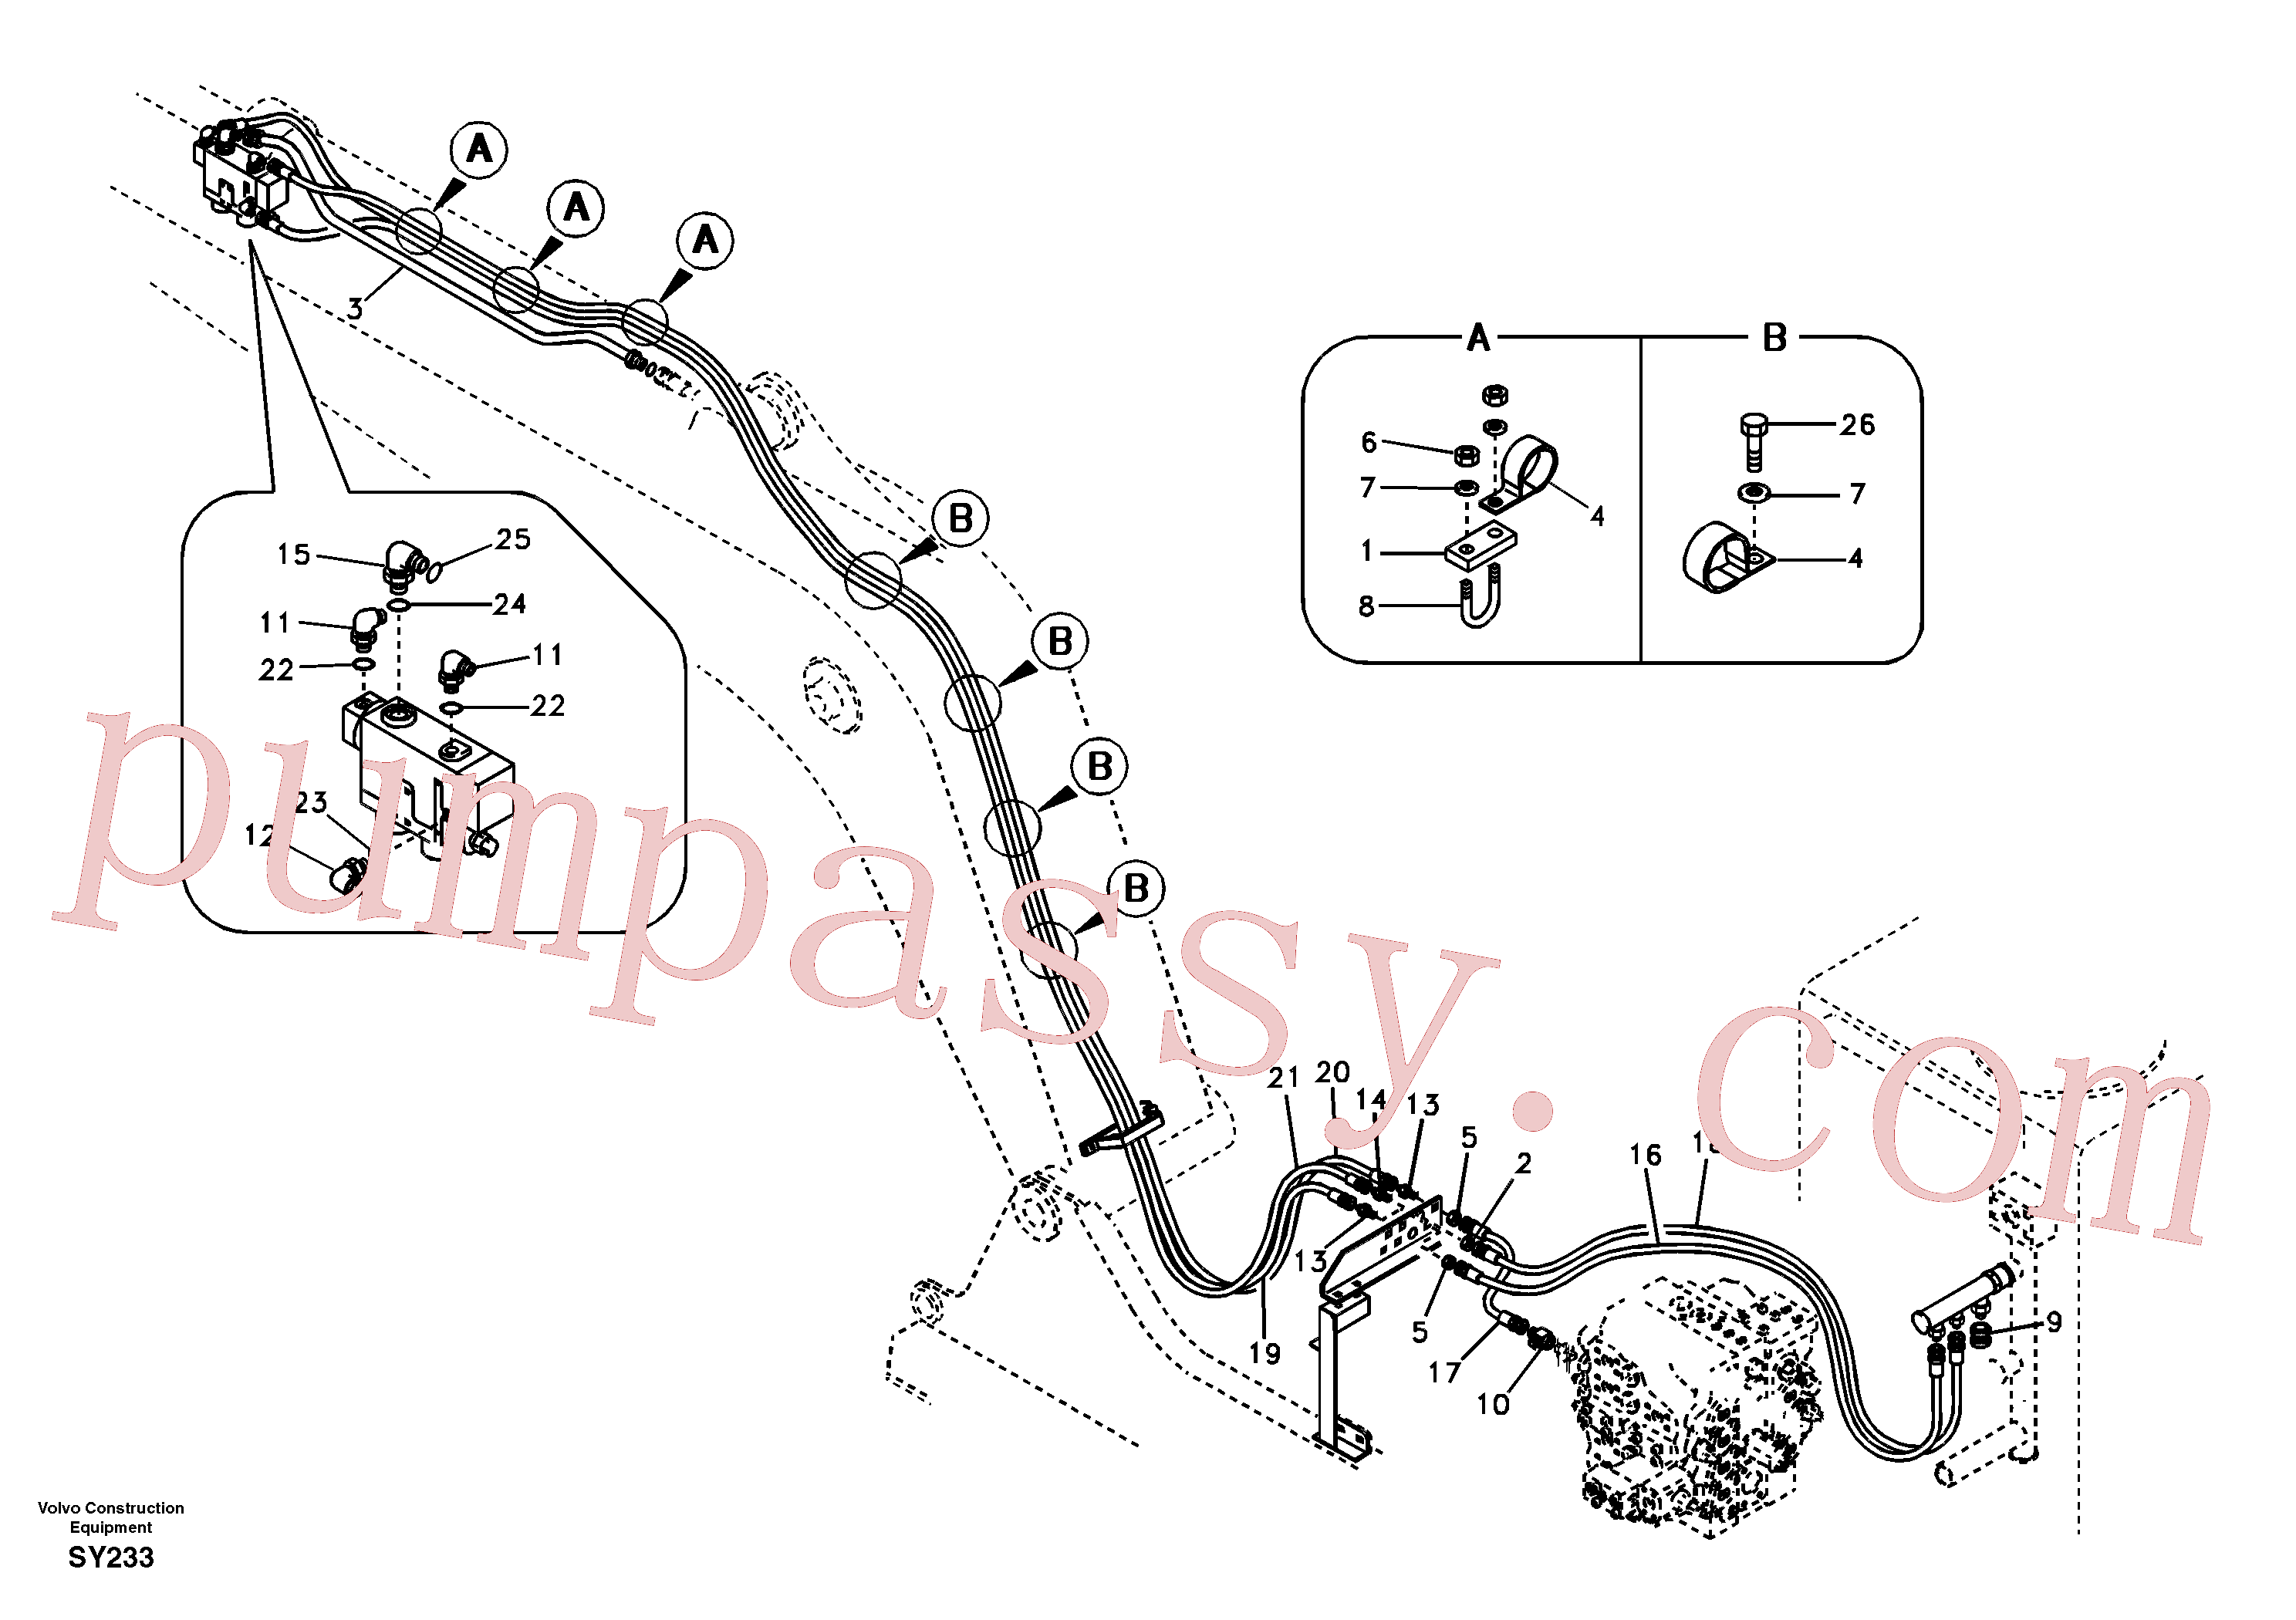 SA9451-04334 for Volvo Working hydraulic, dipper arm rupture(SY233 assembly)